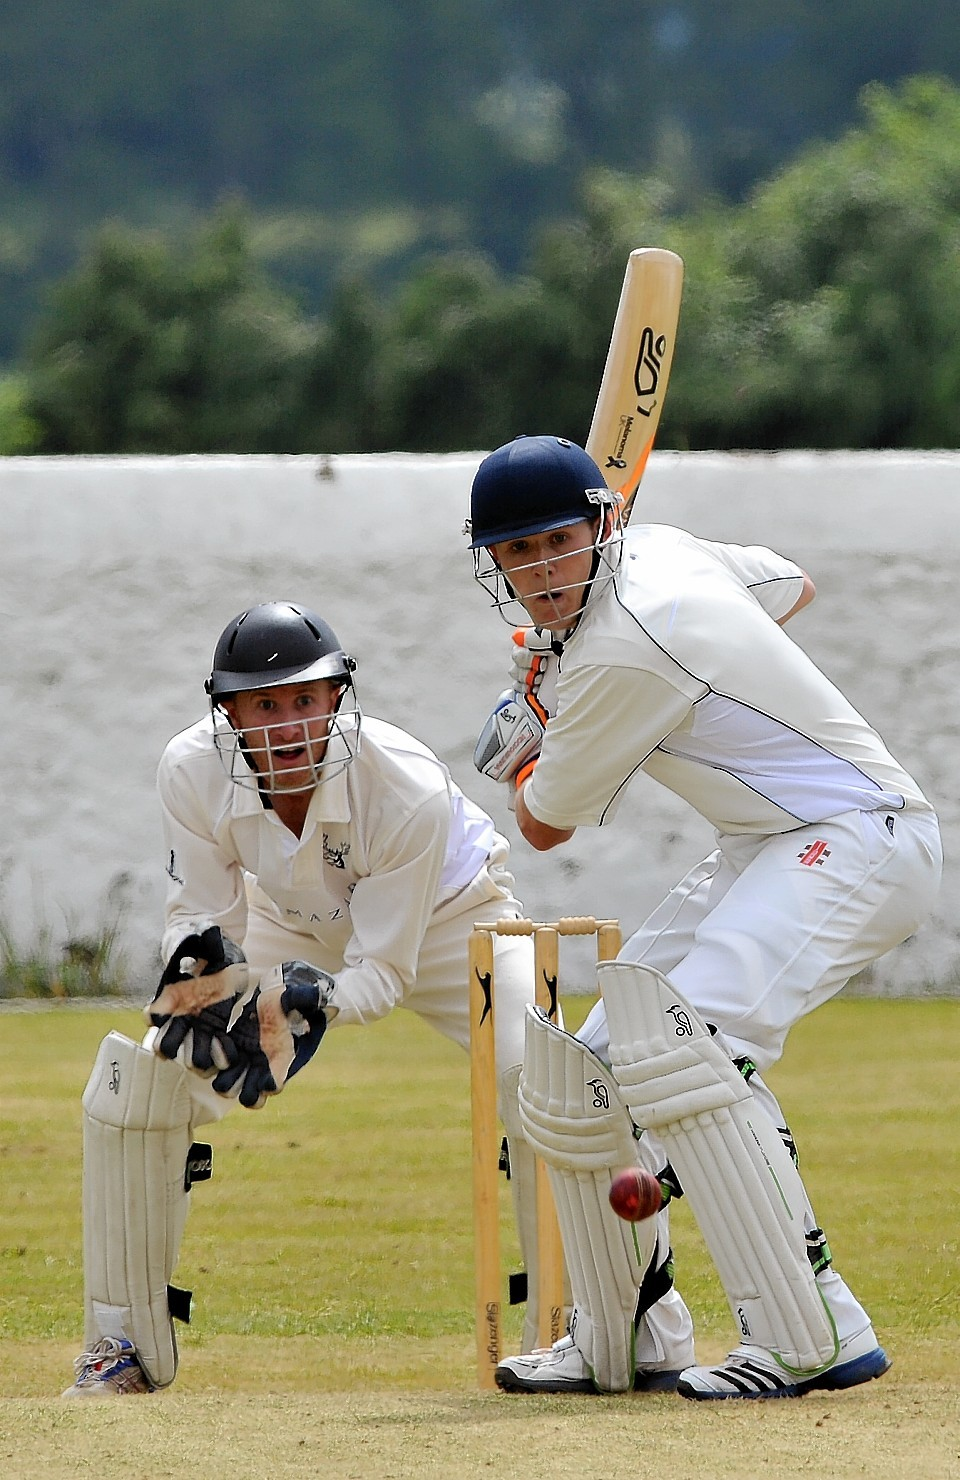 Controversial Dismissal Before Rain Stops Play Press And